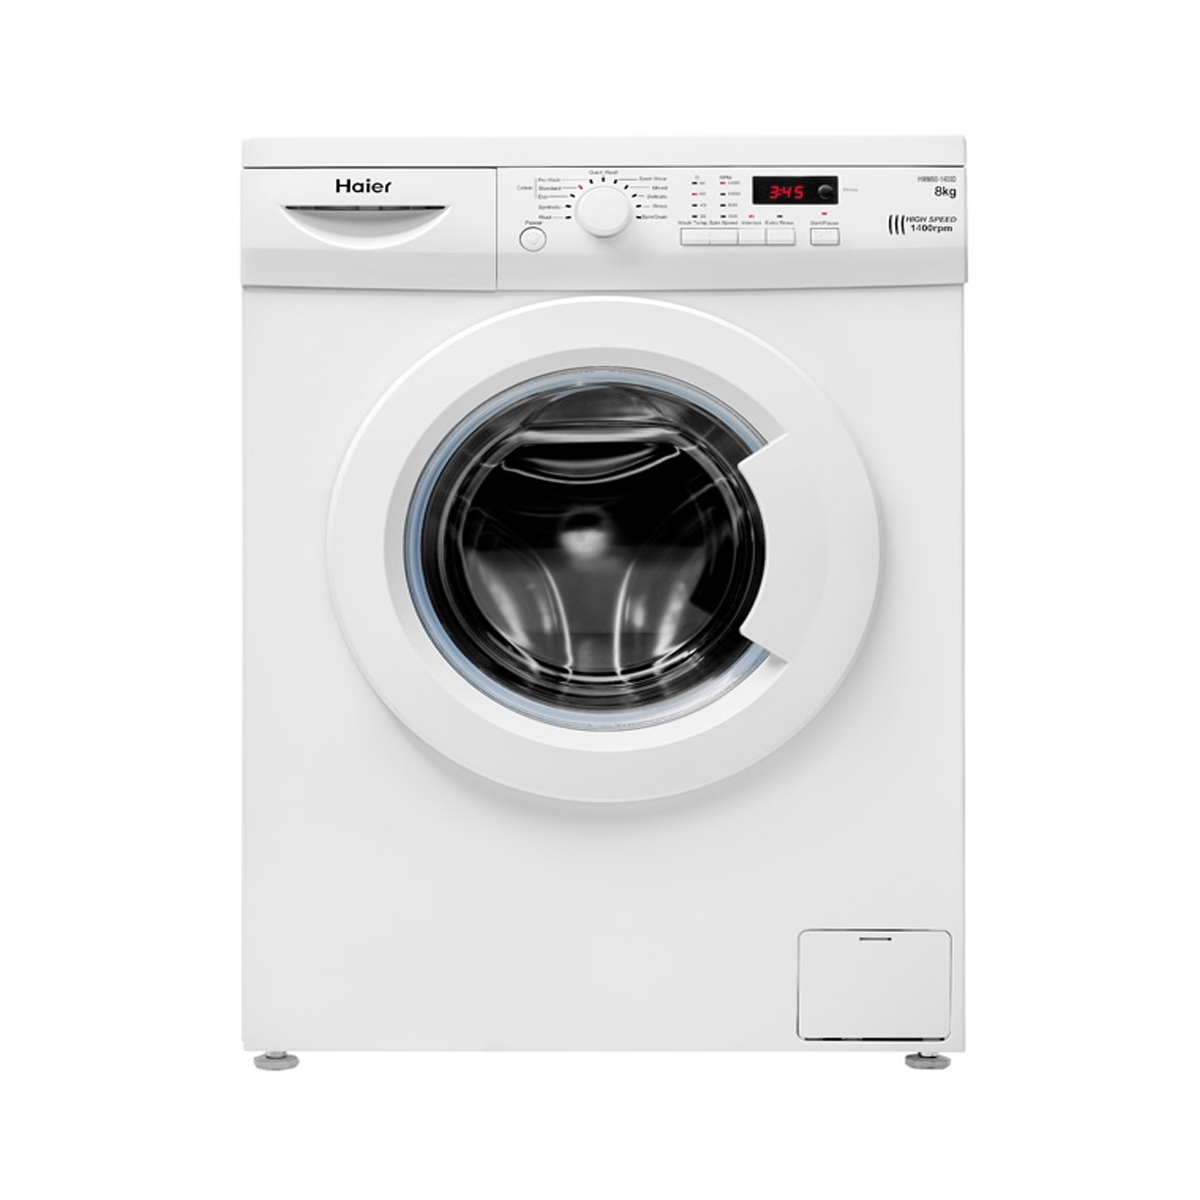 haier washing machine 8kg front load haier washing machine hwm80 1403d up to 12985